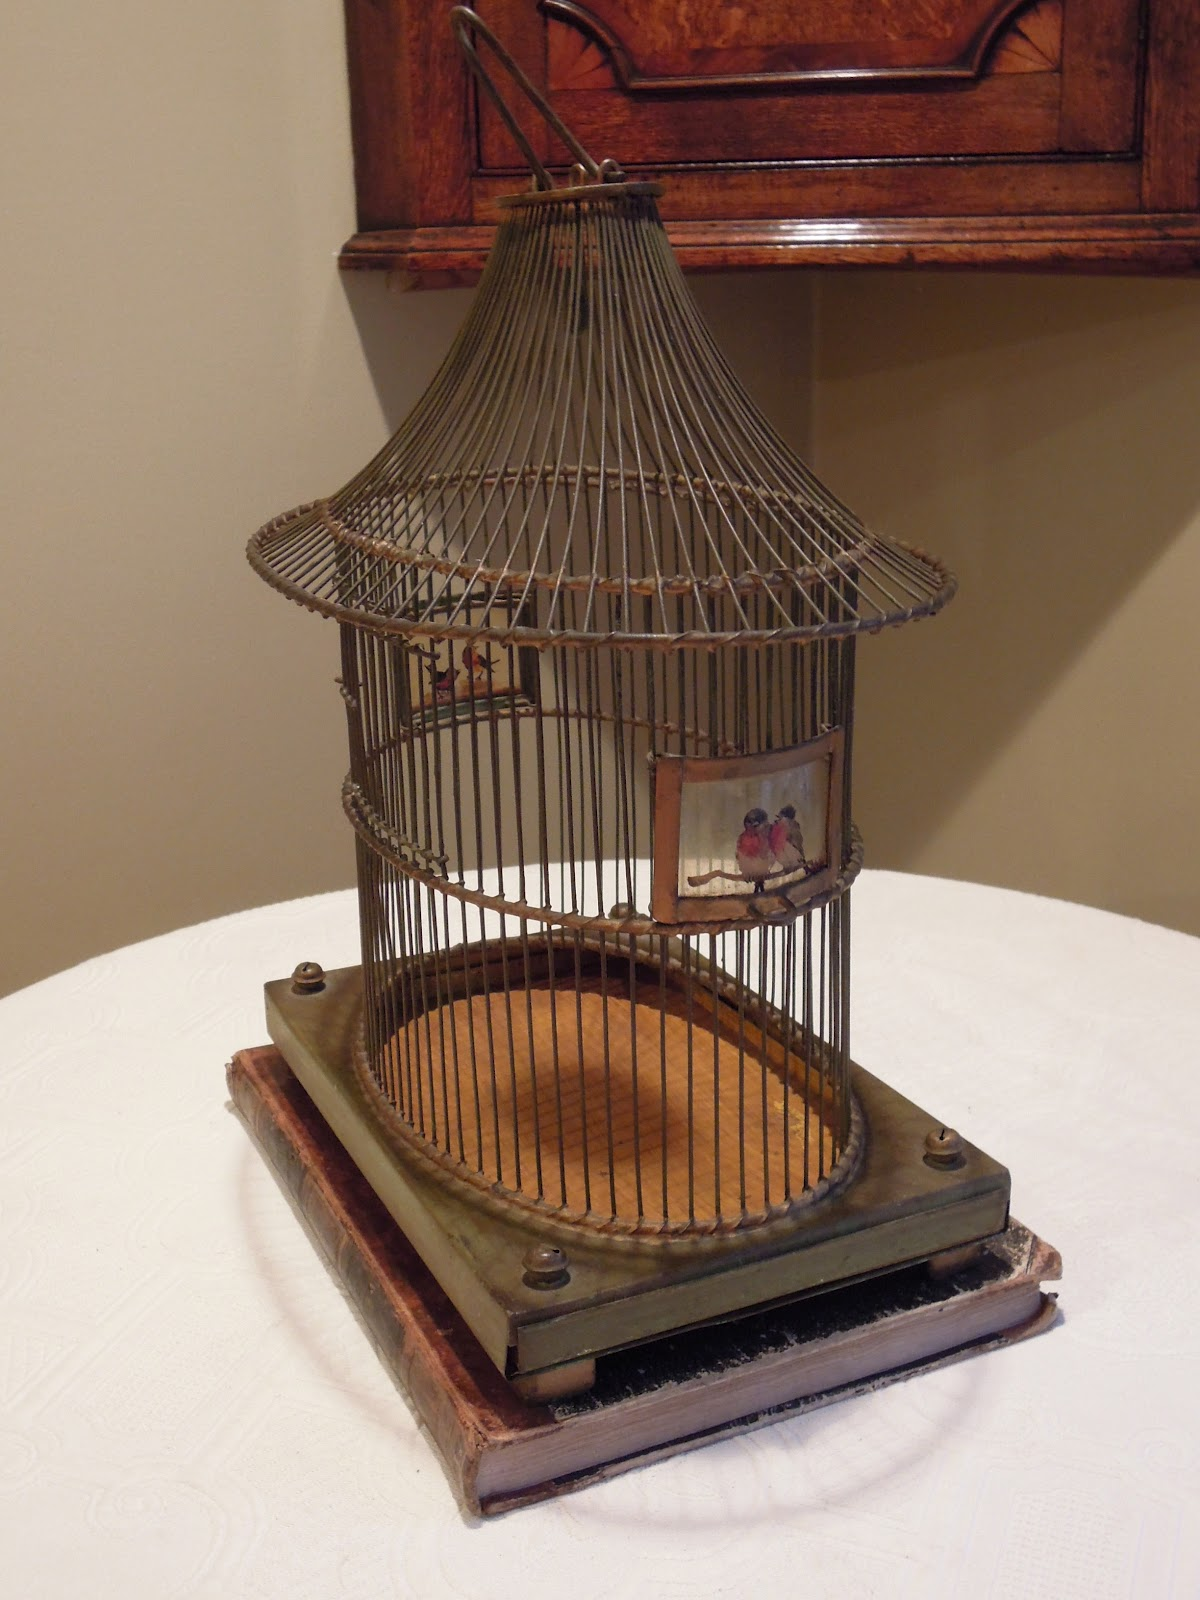 Antiqueaholics Fabulous Find  My Antique Bird Cage. Tropical Table Lamps. 48 Inch Bathtub. Beachy Living Rooms. Solotube. Wardrobe Armoires. Chinese Bed. Garden Screens. Horizon Home Furniture